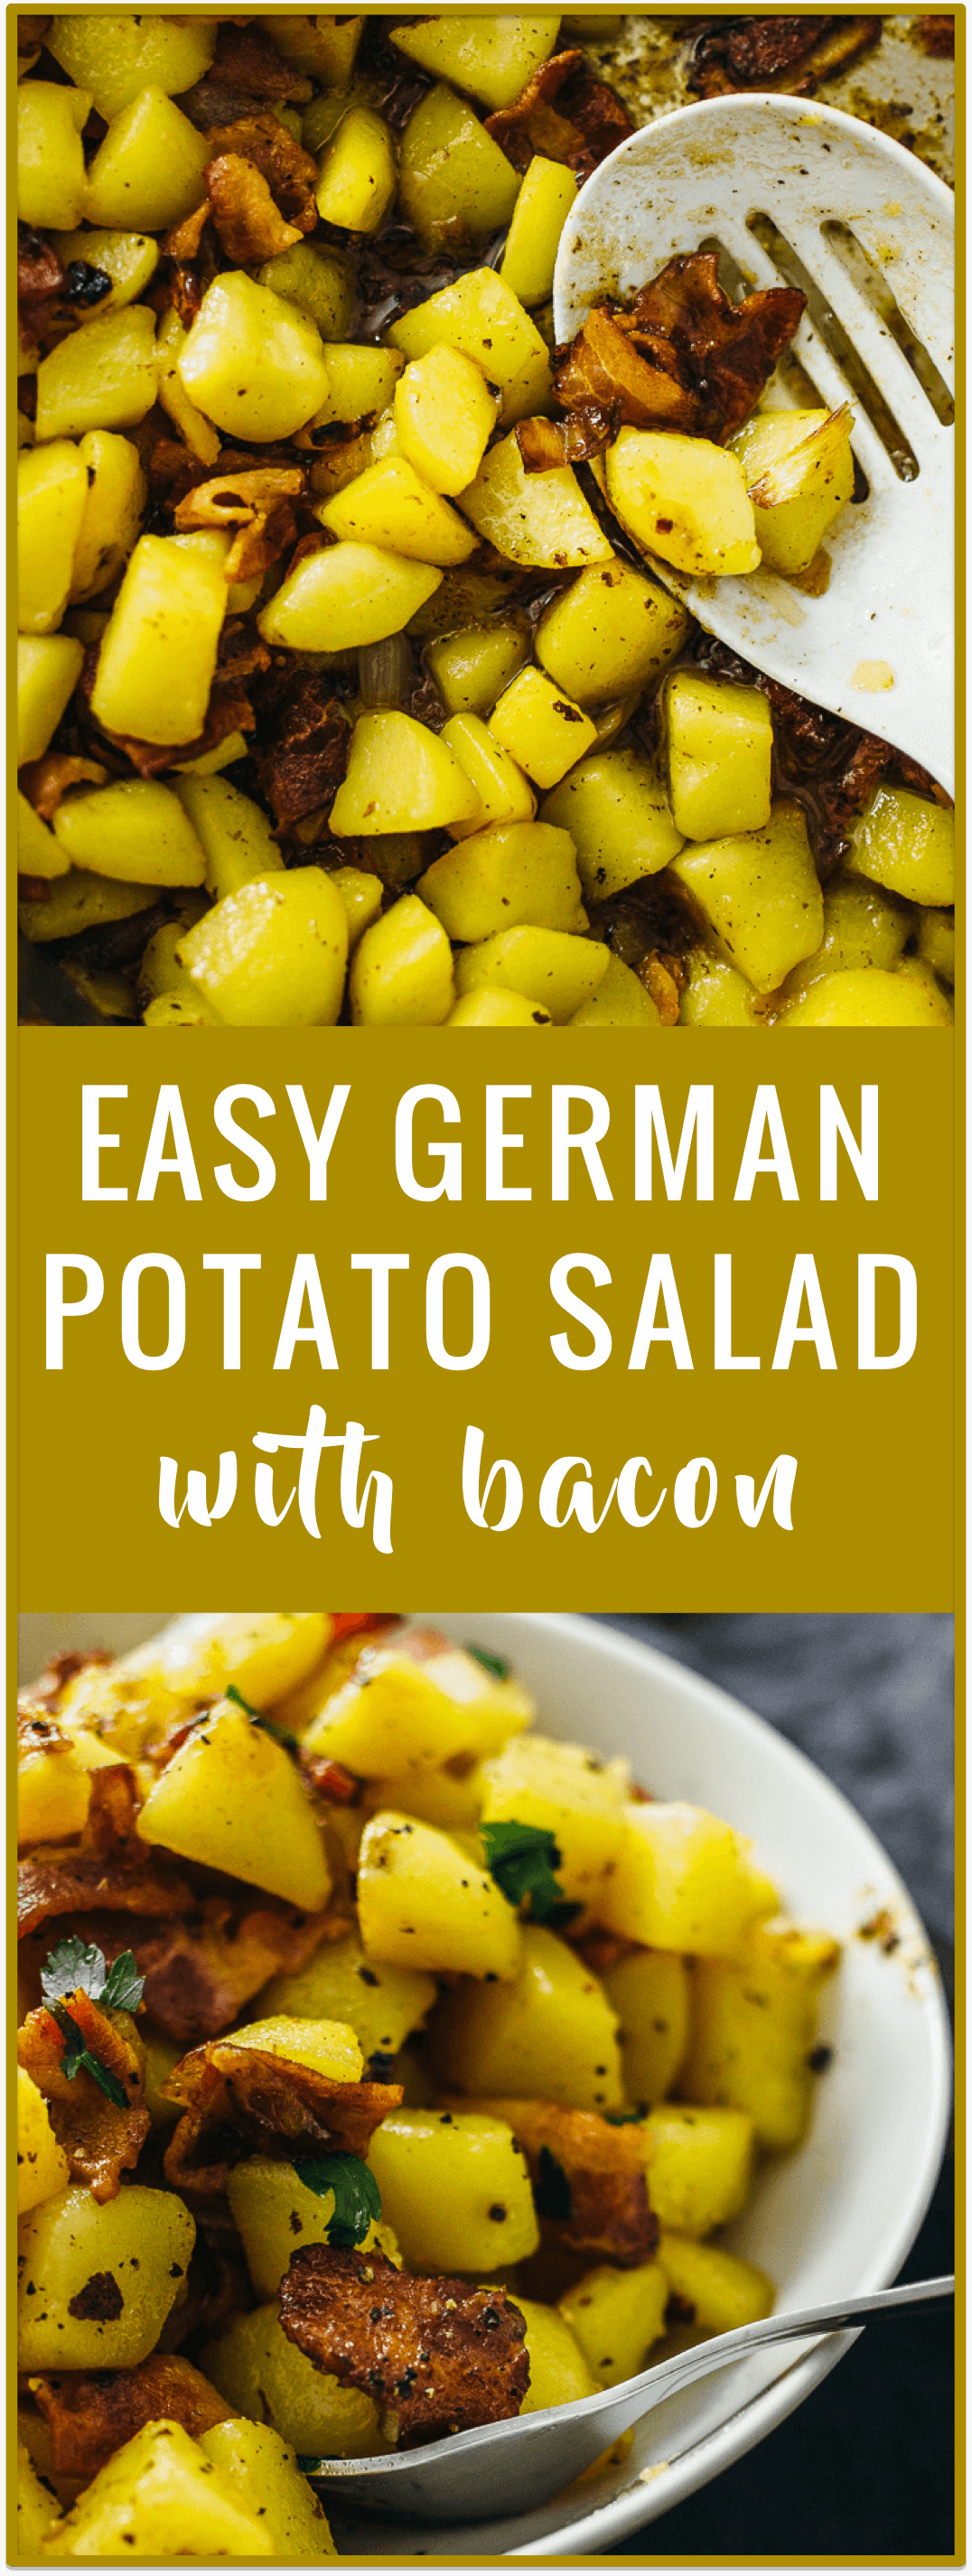 German potato salad with bacon - German potato salad is served warm and not cold, and includes crispy bacon and vinegar. It's an easy and authentic recipe that originates from southern Germany.